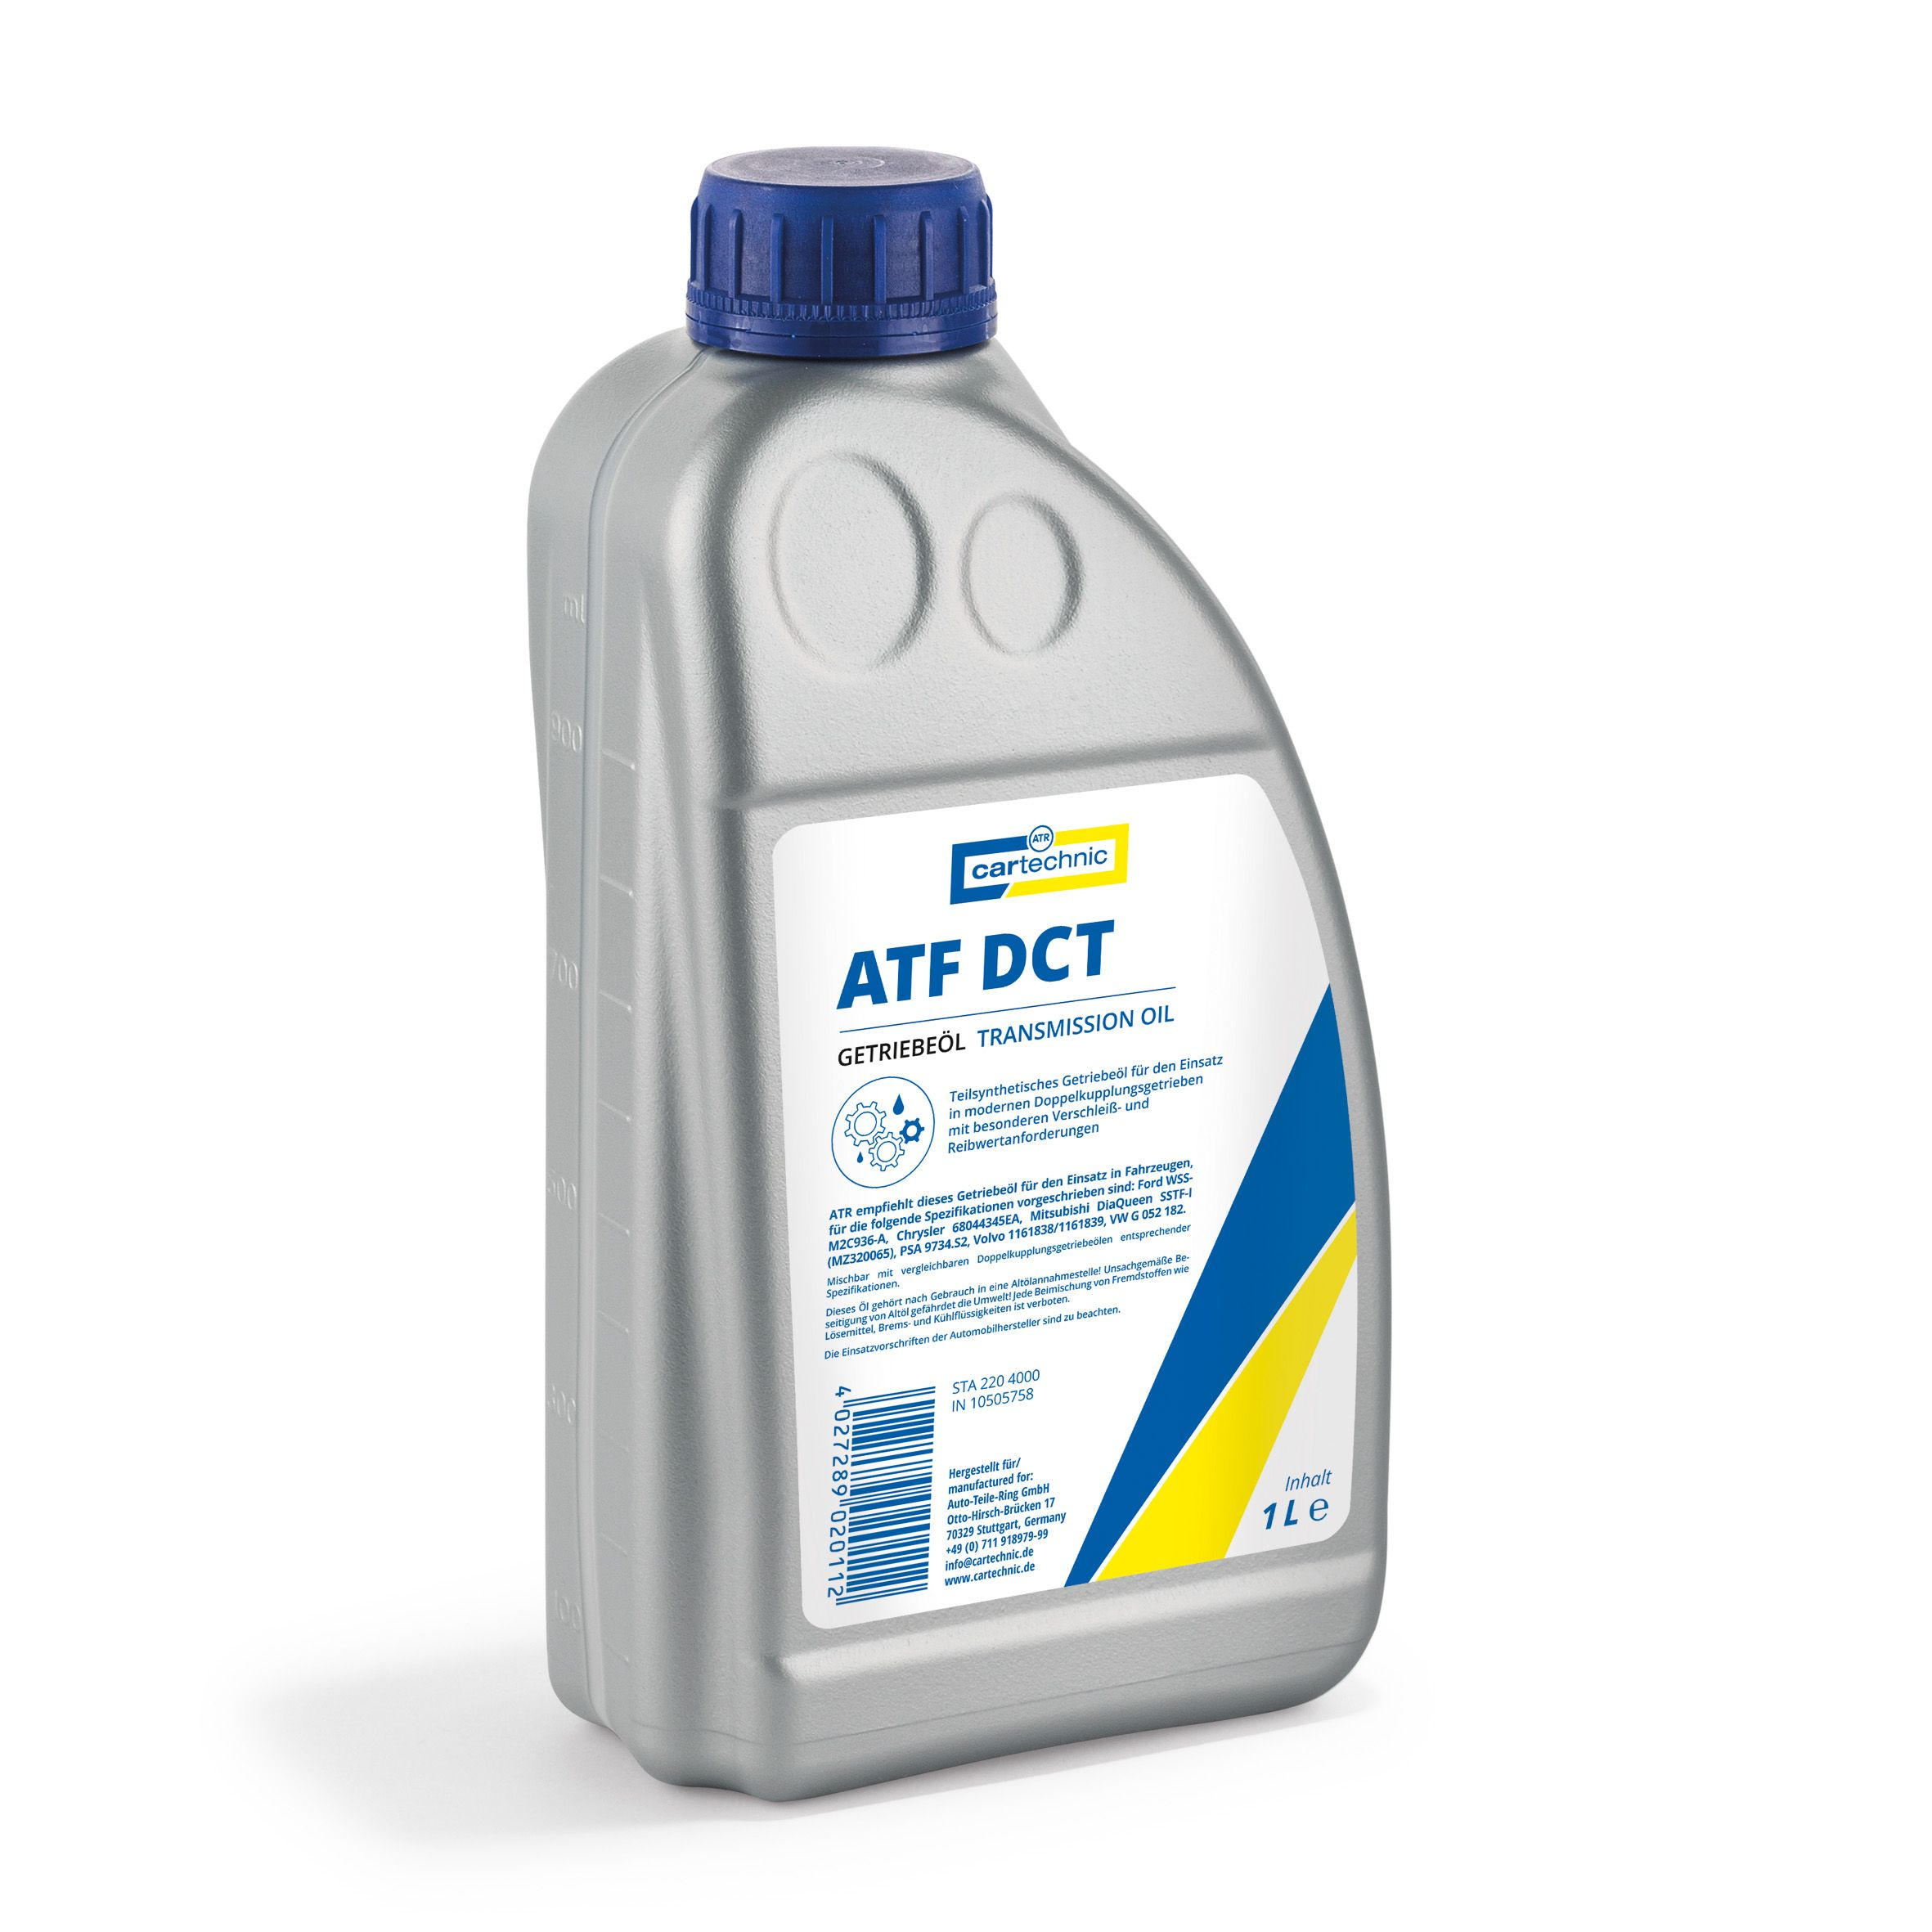 CARTECHRO Transmission oil ATF DCT 1 liter 25035-114-J2